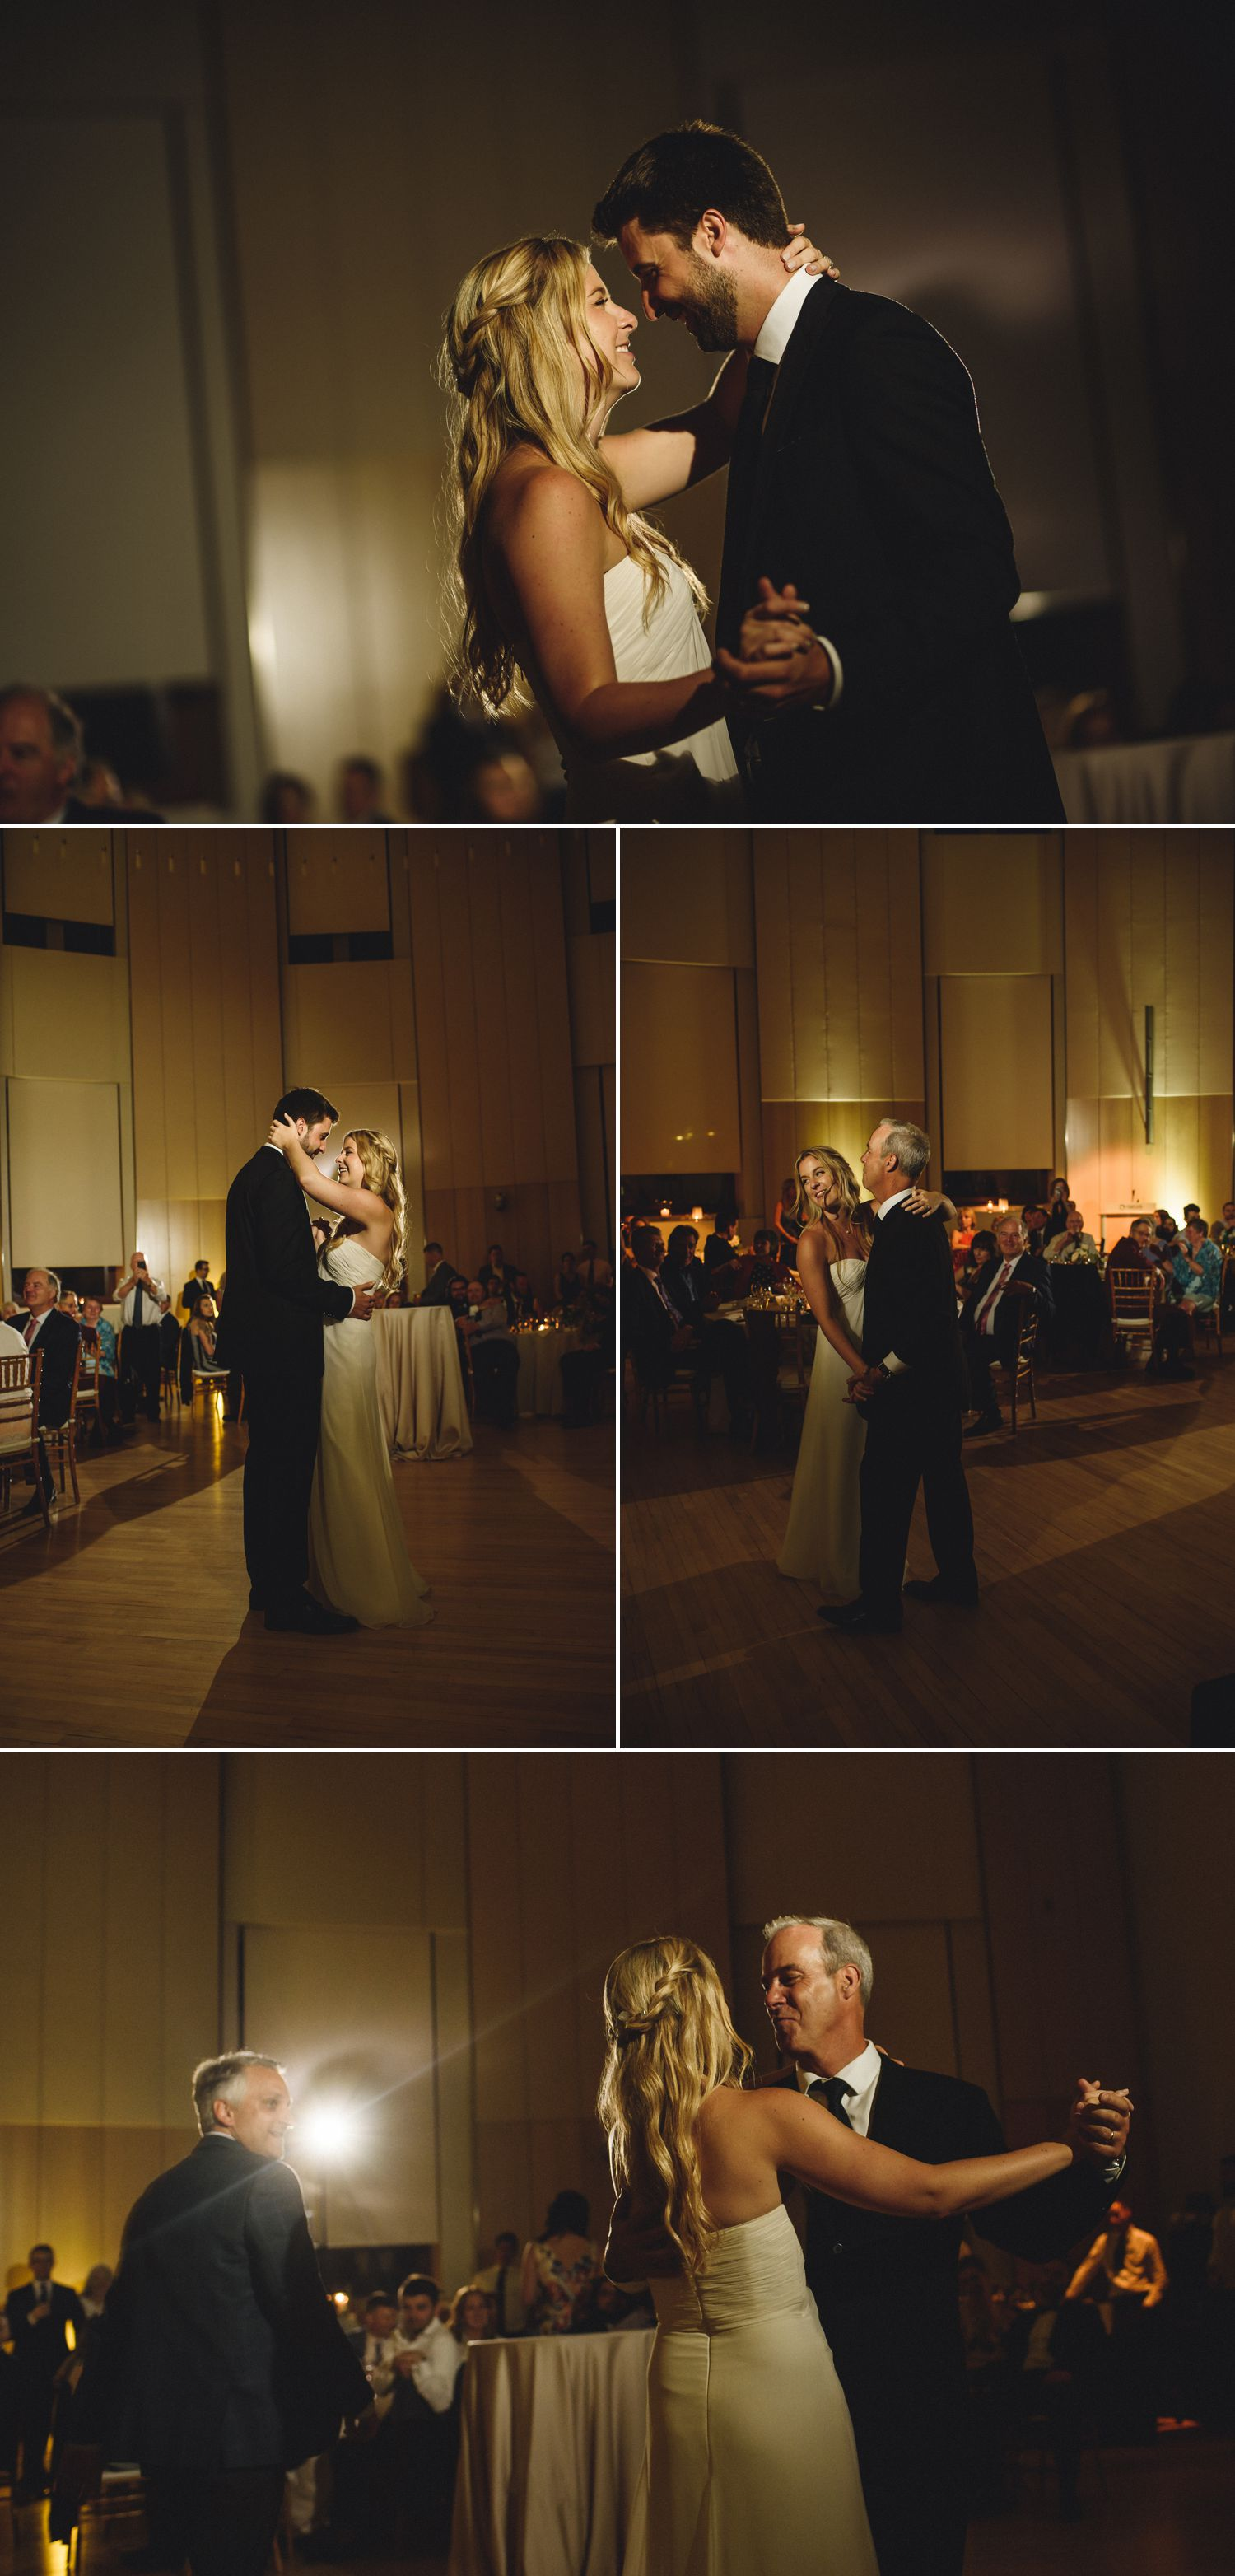 The bride and groom during their first dance at their wedding reception at The Museum of Nature in downtown Ottawa